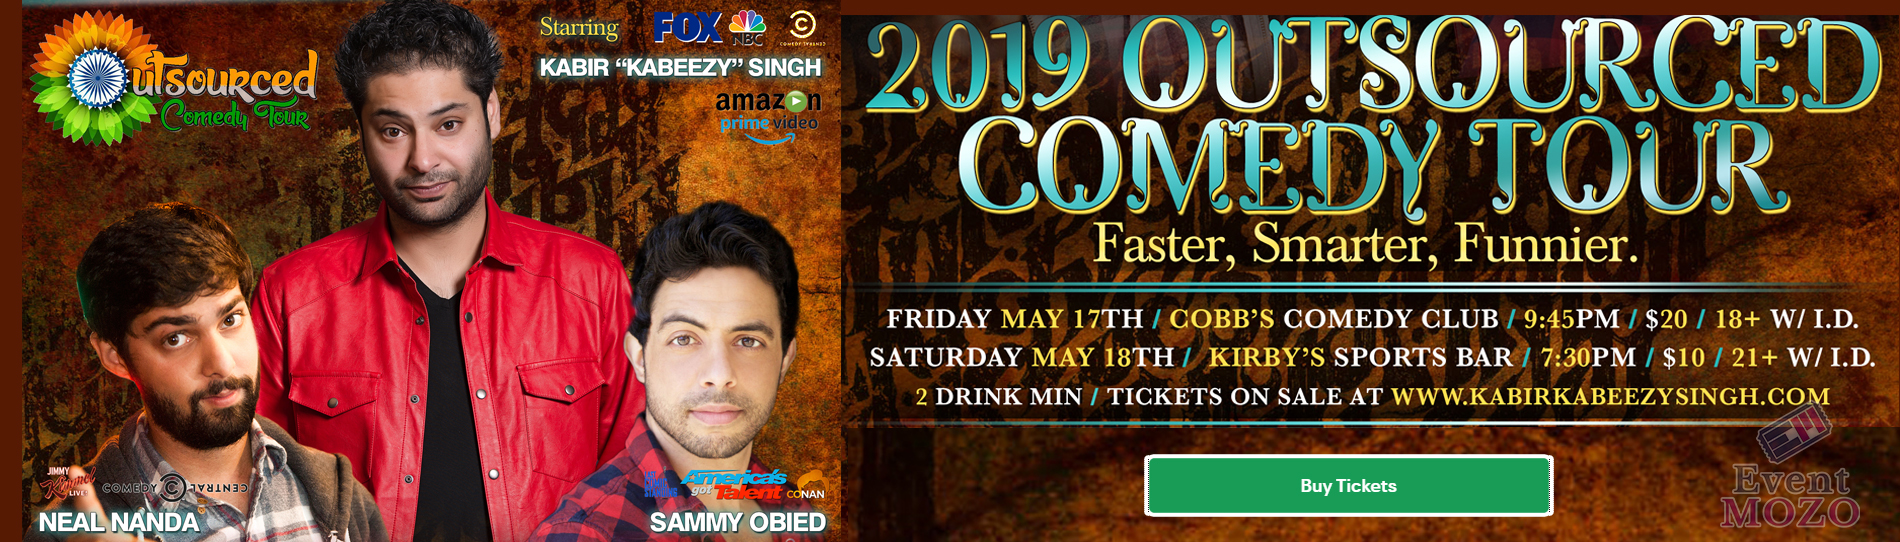 EventMozo 2019 Outsourced Comedy Tour with Kabir Singh and Neel Nanda.